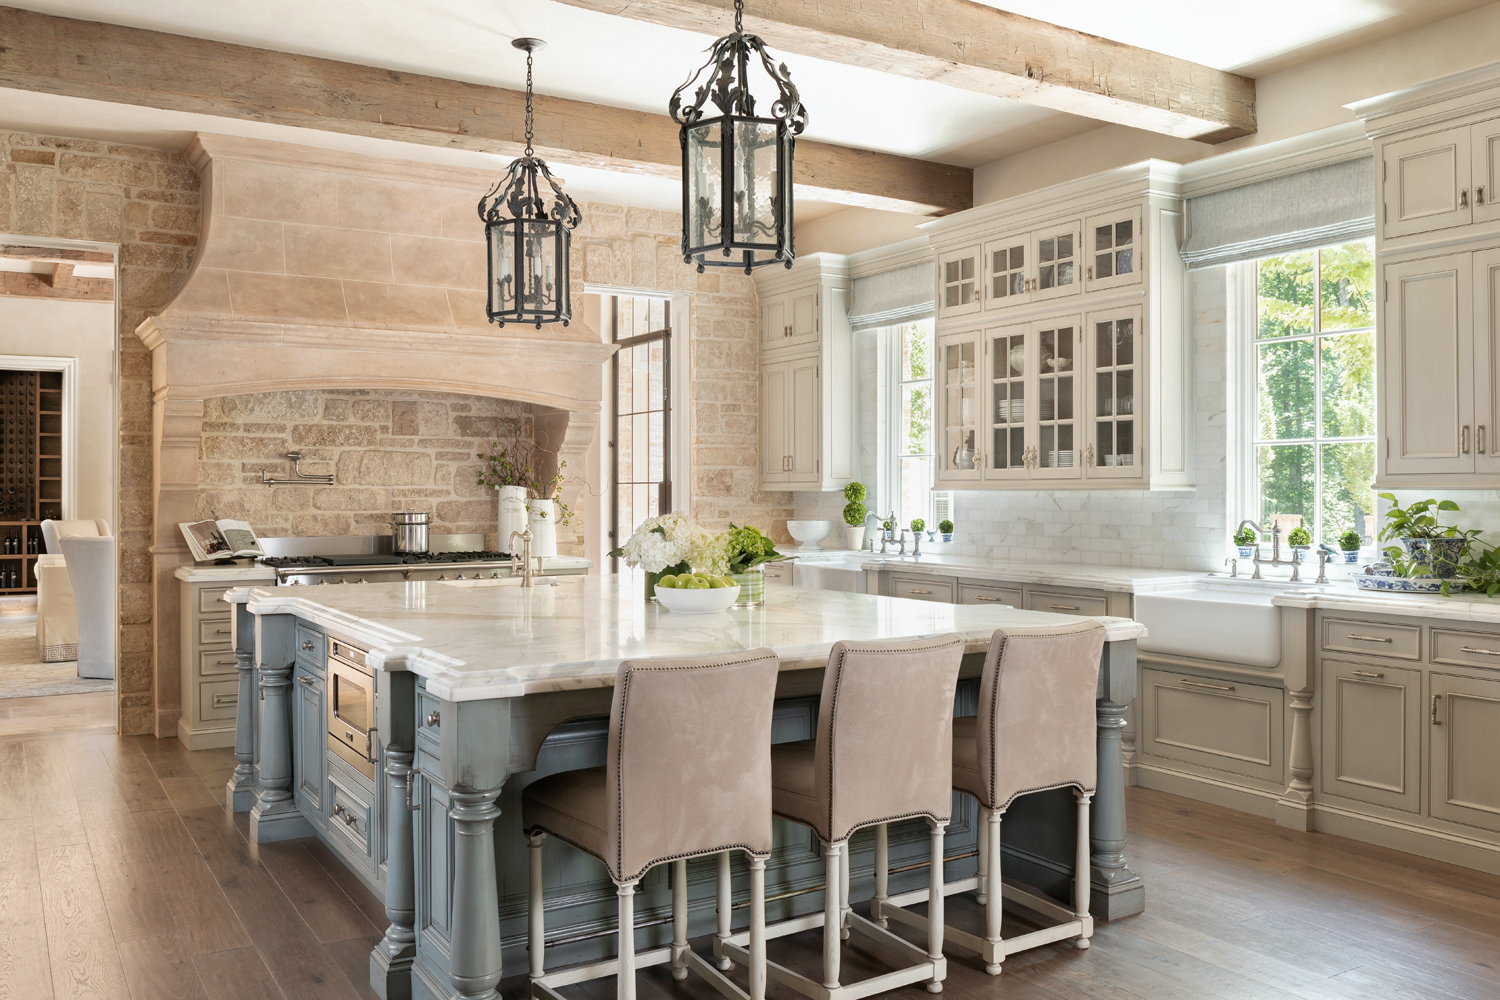 Hood mimics Norman fireplace and wood plank floors in Harrison Design kitchen with big center island glass paned cabinets